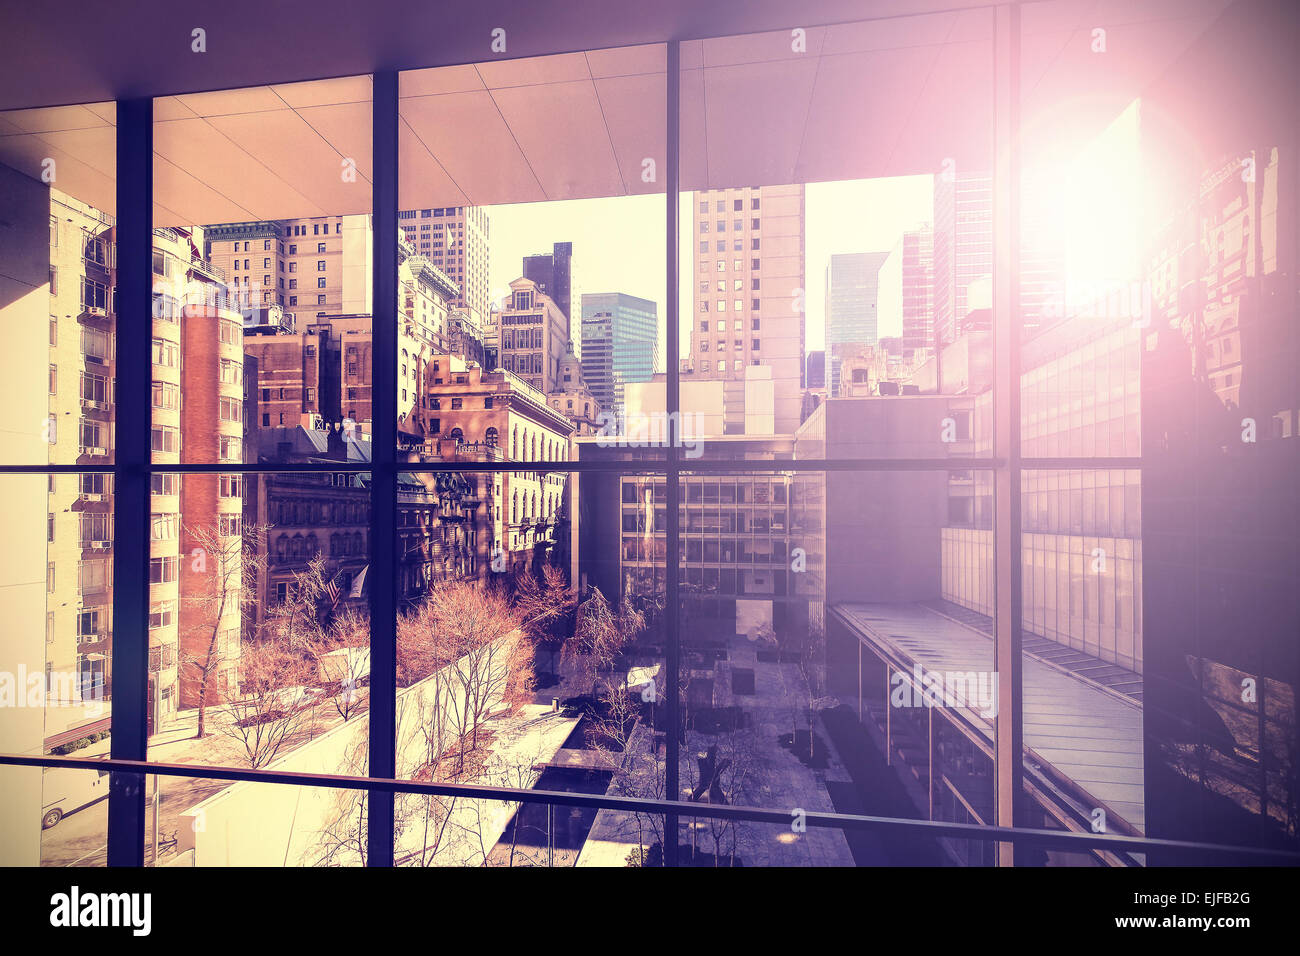 Retro vintage stylized picture of Manhattan with flare effect, New York City, USA. - Stock Image